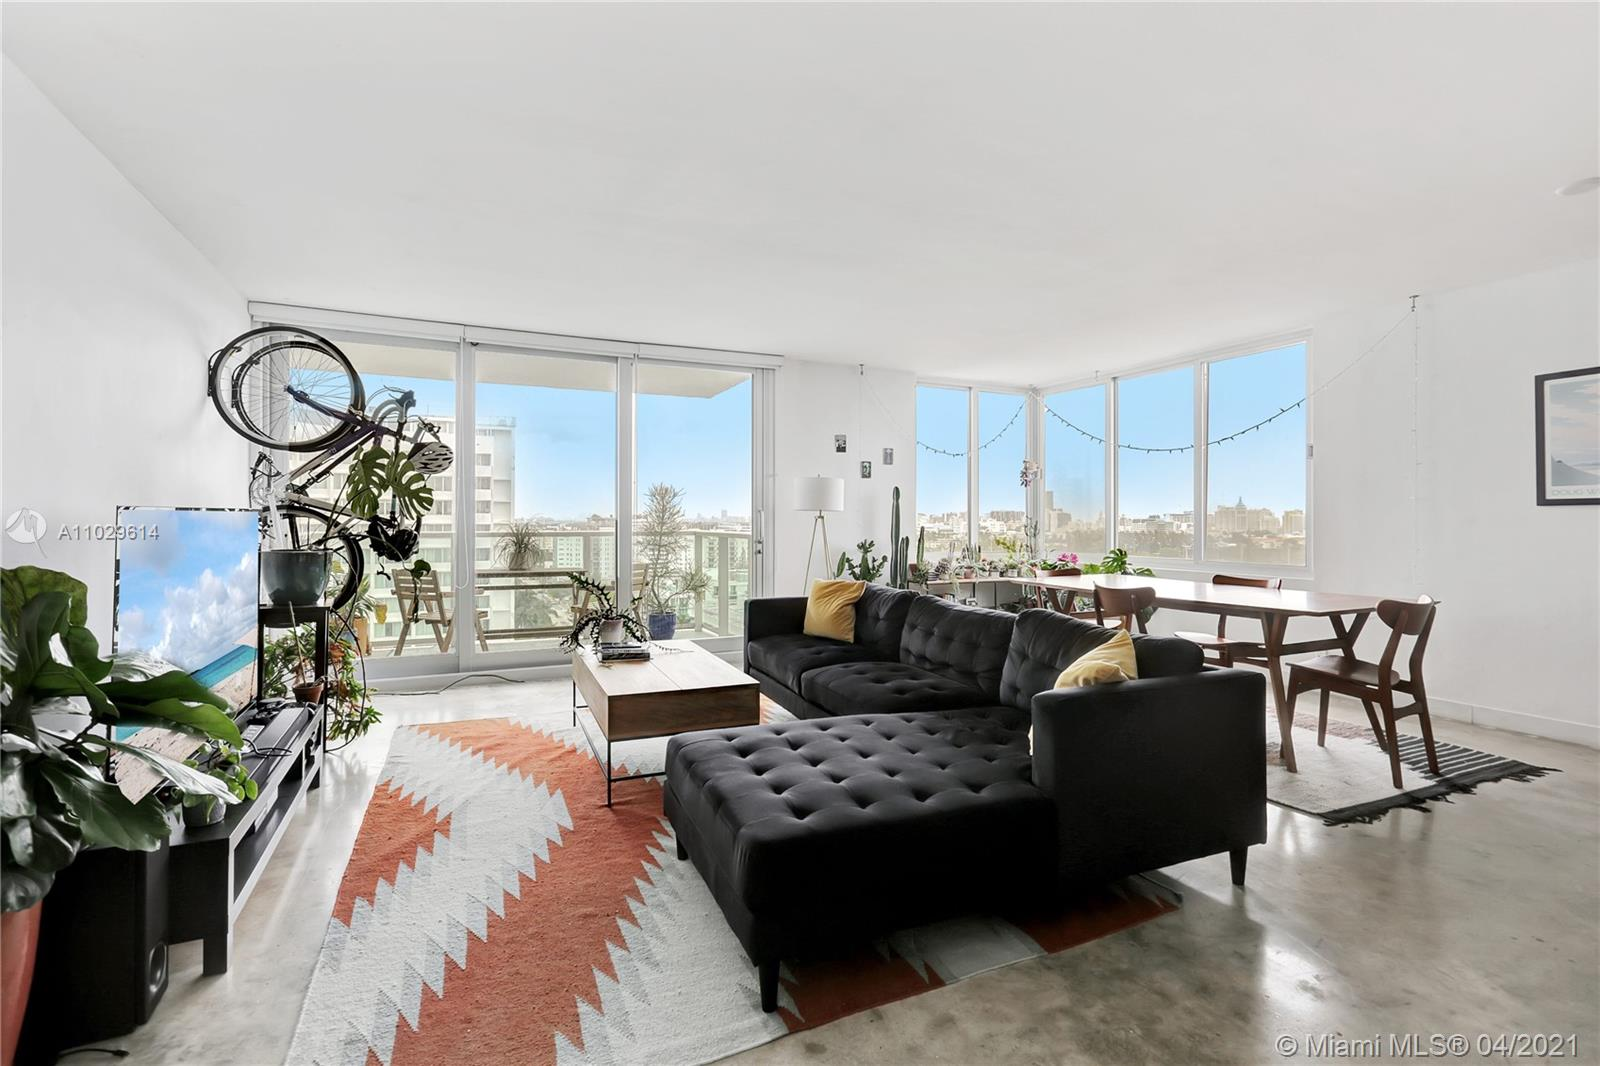 Over-sized 1 bedroom, 1.5 bath at the Mirador 1000, 14th floor overlooking all of SoBe with views all the way to the ocean. This unit comes with new high-impact windows and doors, 3 large closets, 2 are walk-ins, along with a linen closet. Apartment has polished concrete floors, updated kitchen, and a balcony.  Unit comes with 1 assigned covered parking space ($20K value). The Mirador is a full service building that includes a doorman, gym, and pool. Please see following link to access the 3-D tour https://soflo-rephotos.view.property/public/vtour/display/1819074#!/matterport